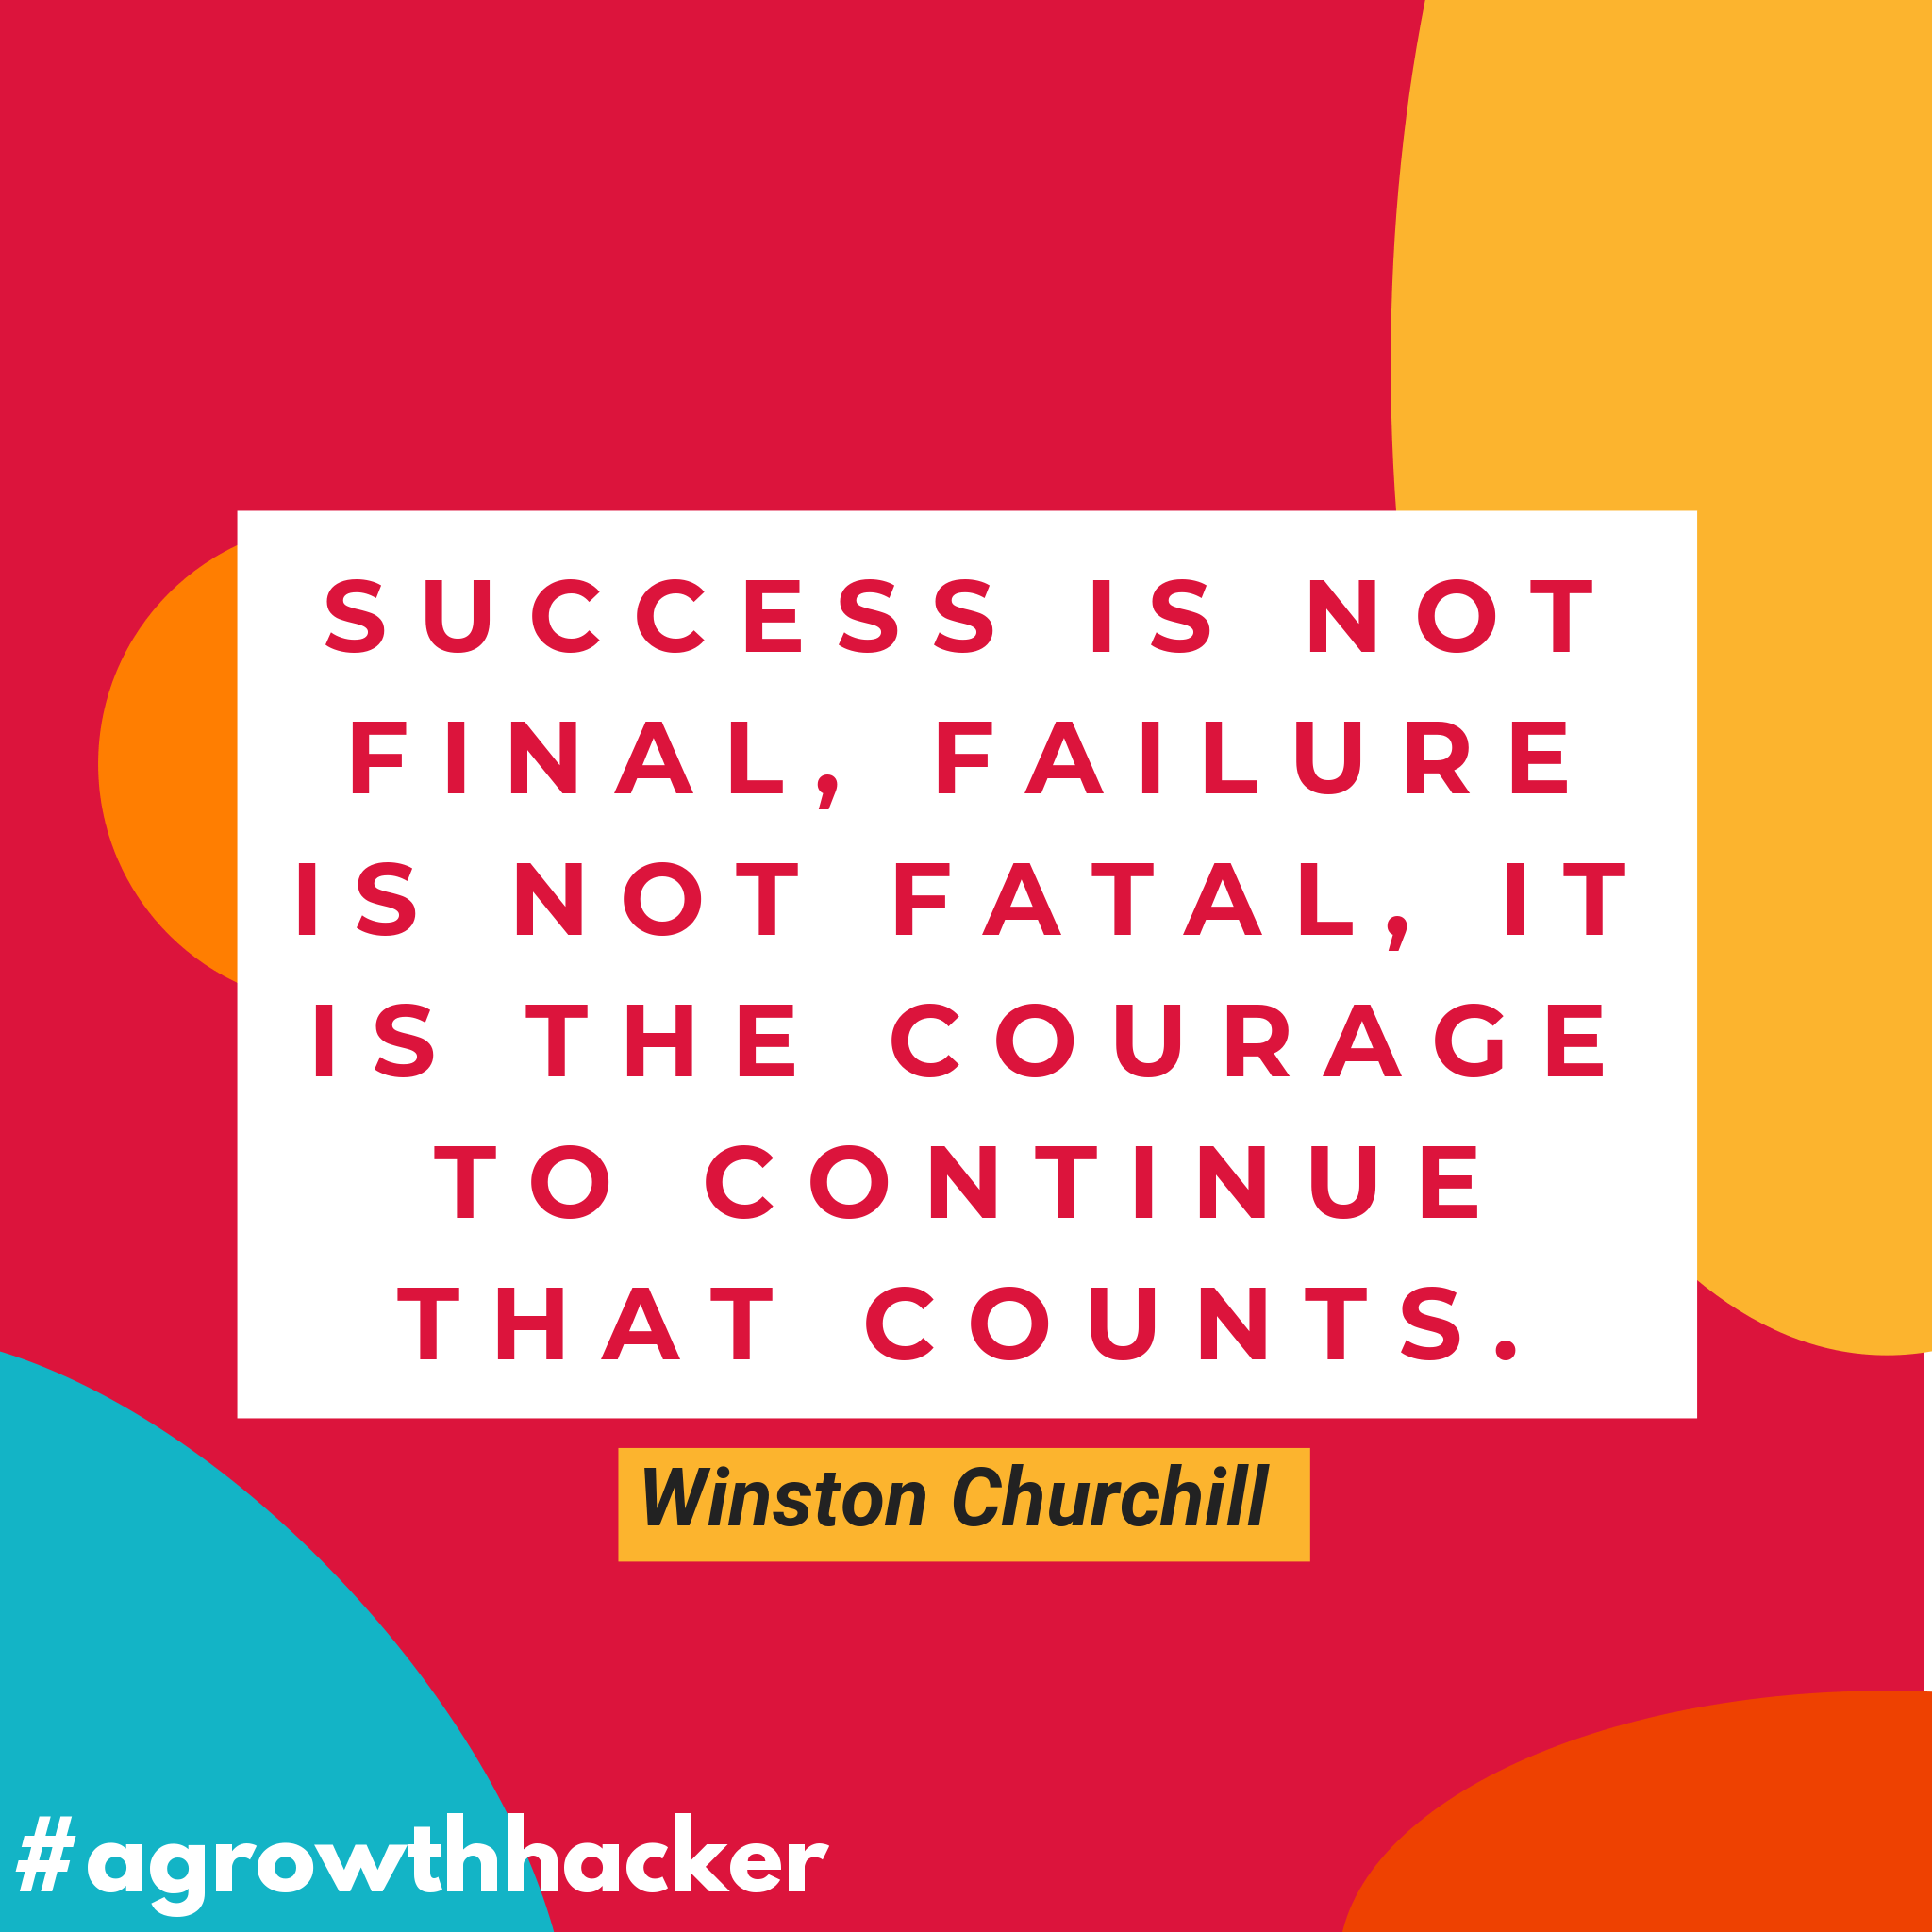 Success Is Not Final Failure Is Not Fatal It Is The Courage To Continue That Counts Winston Churchill A Growth Hacker